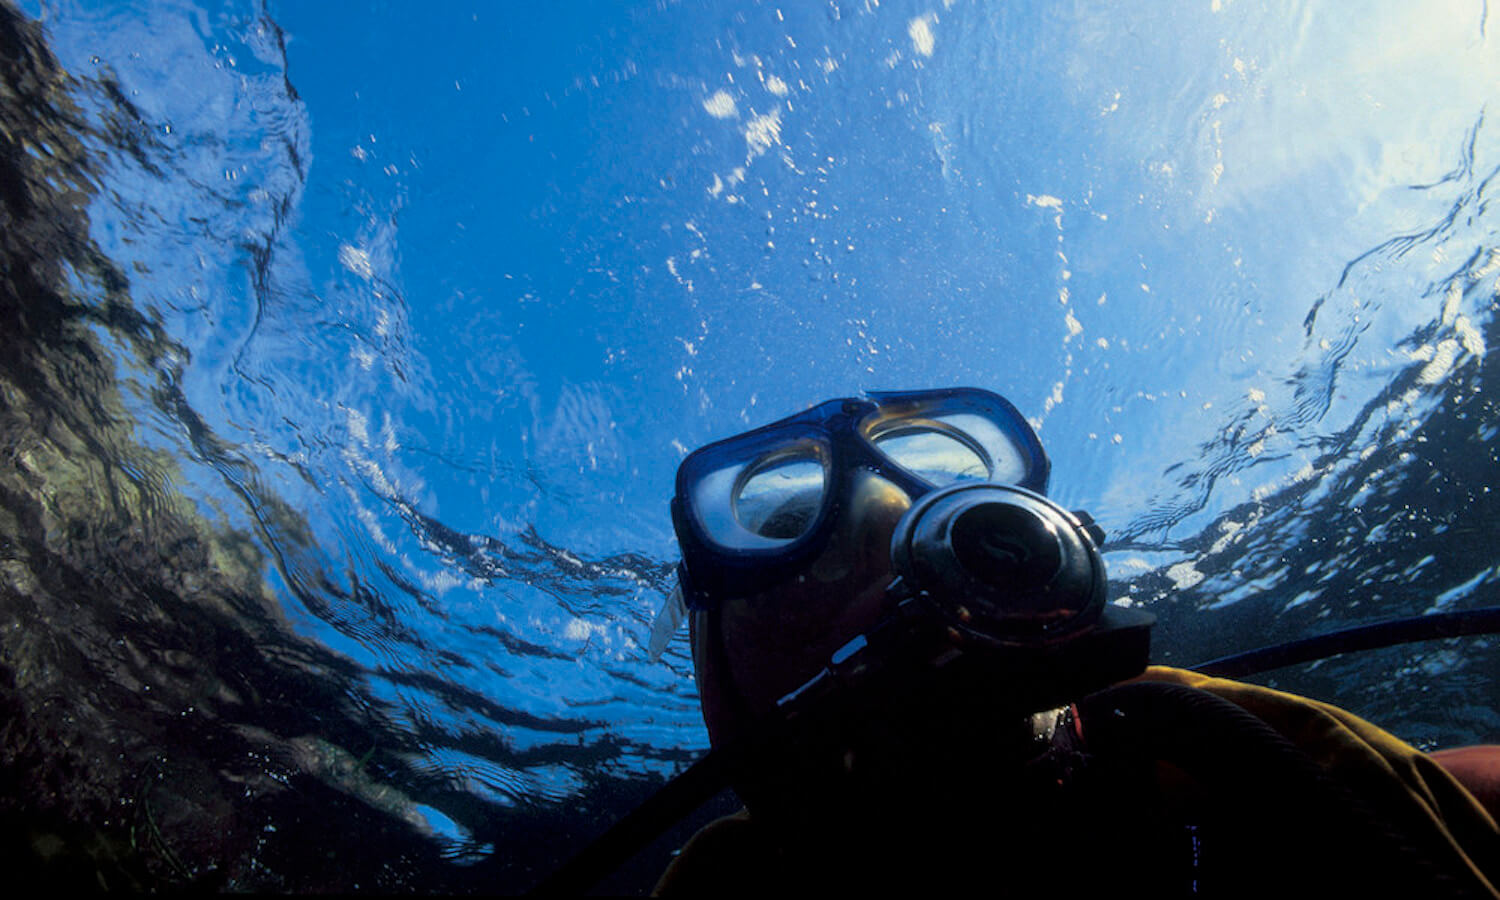 close-up of a scuba diver ascending to the surface